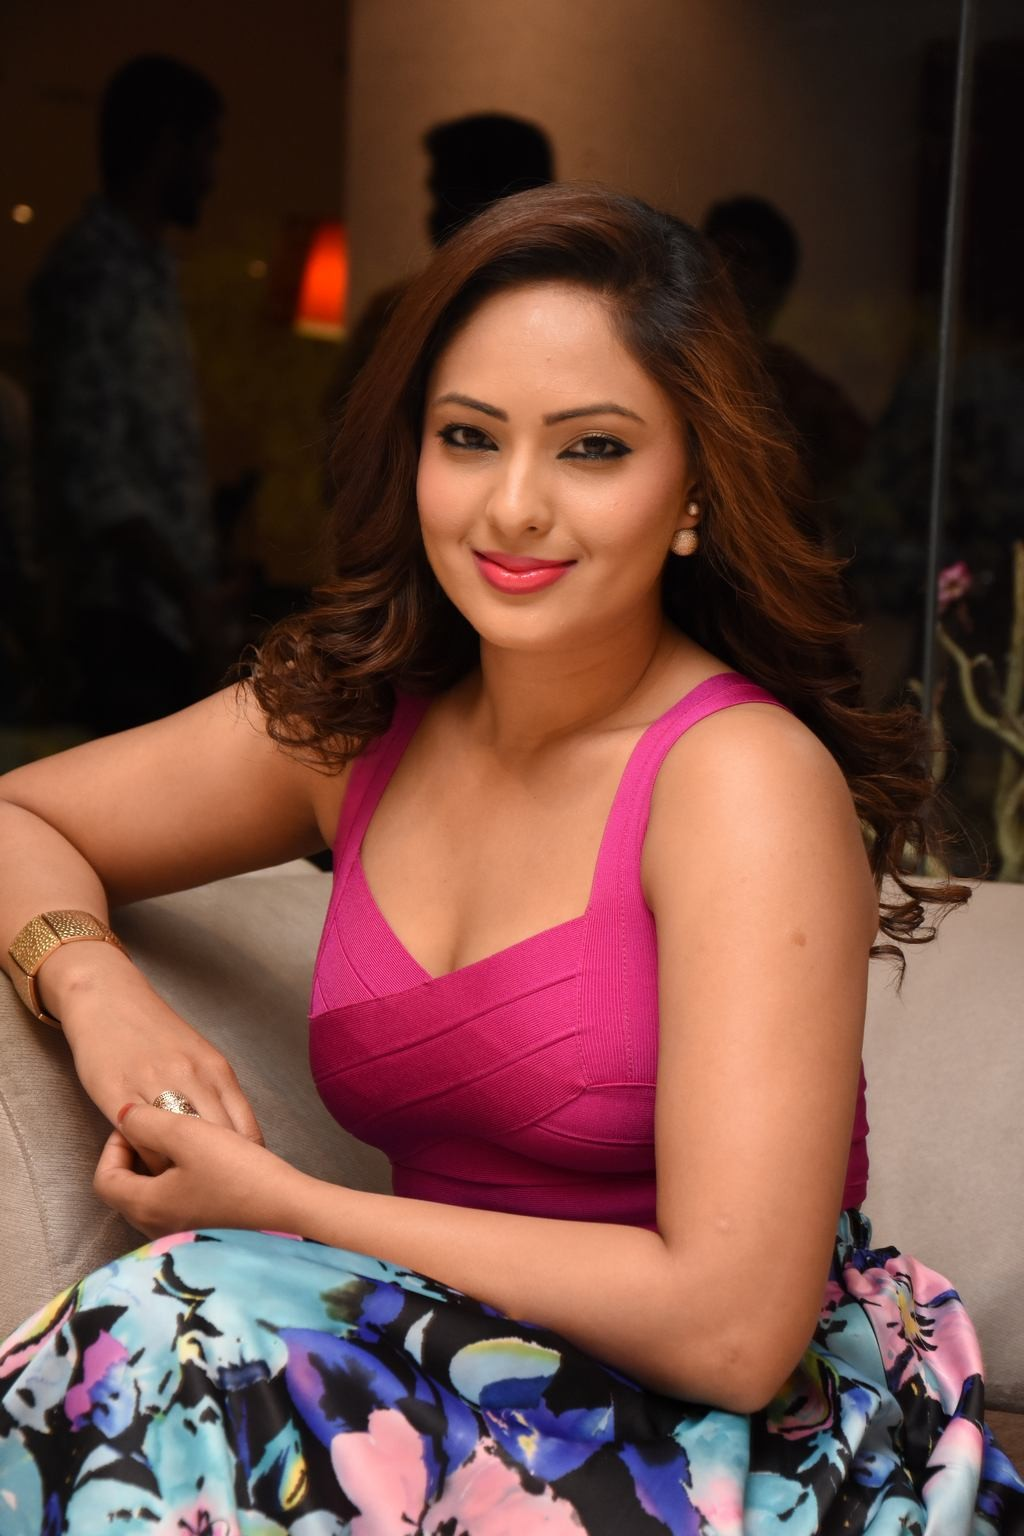 Forum on this topic: Abby Miller, nikesha-patel/